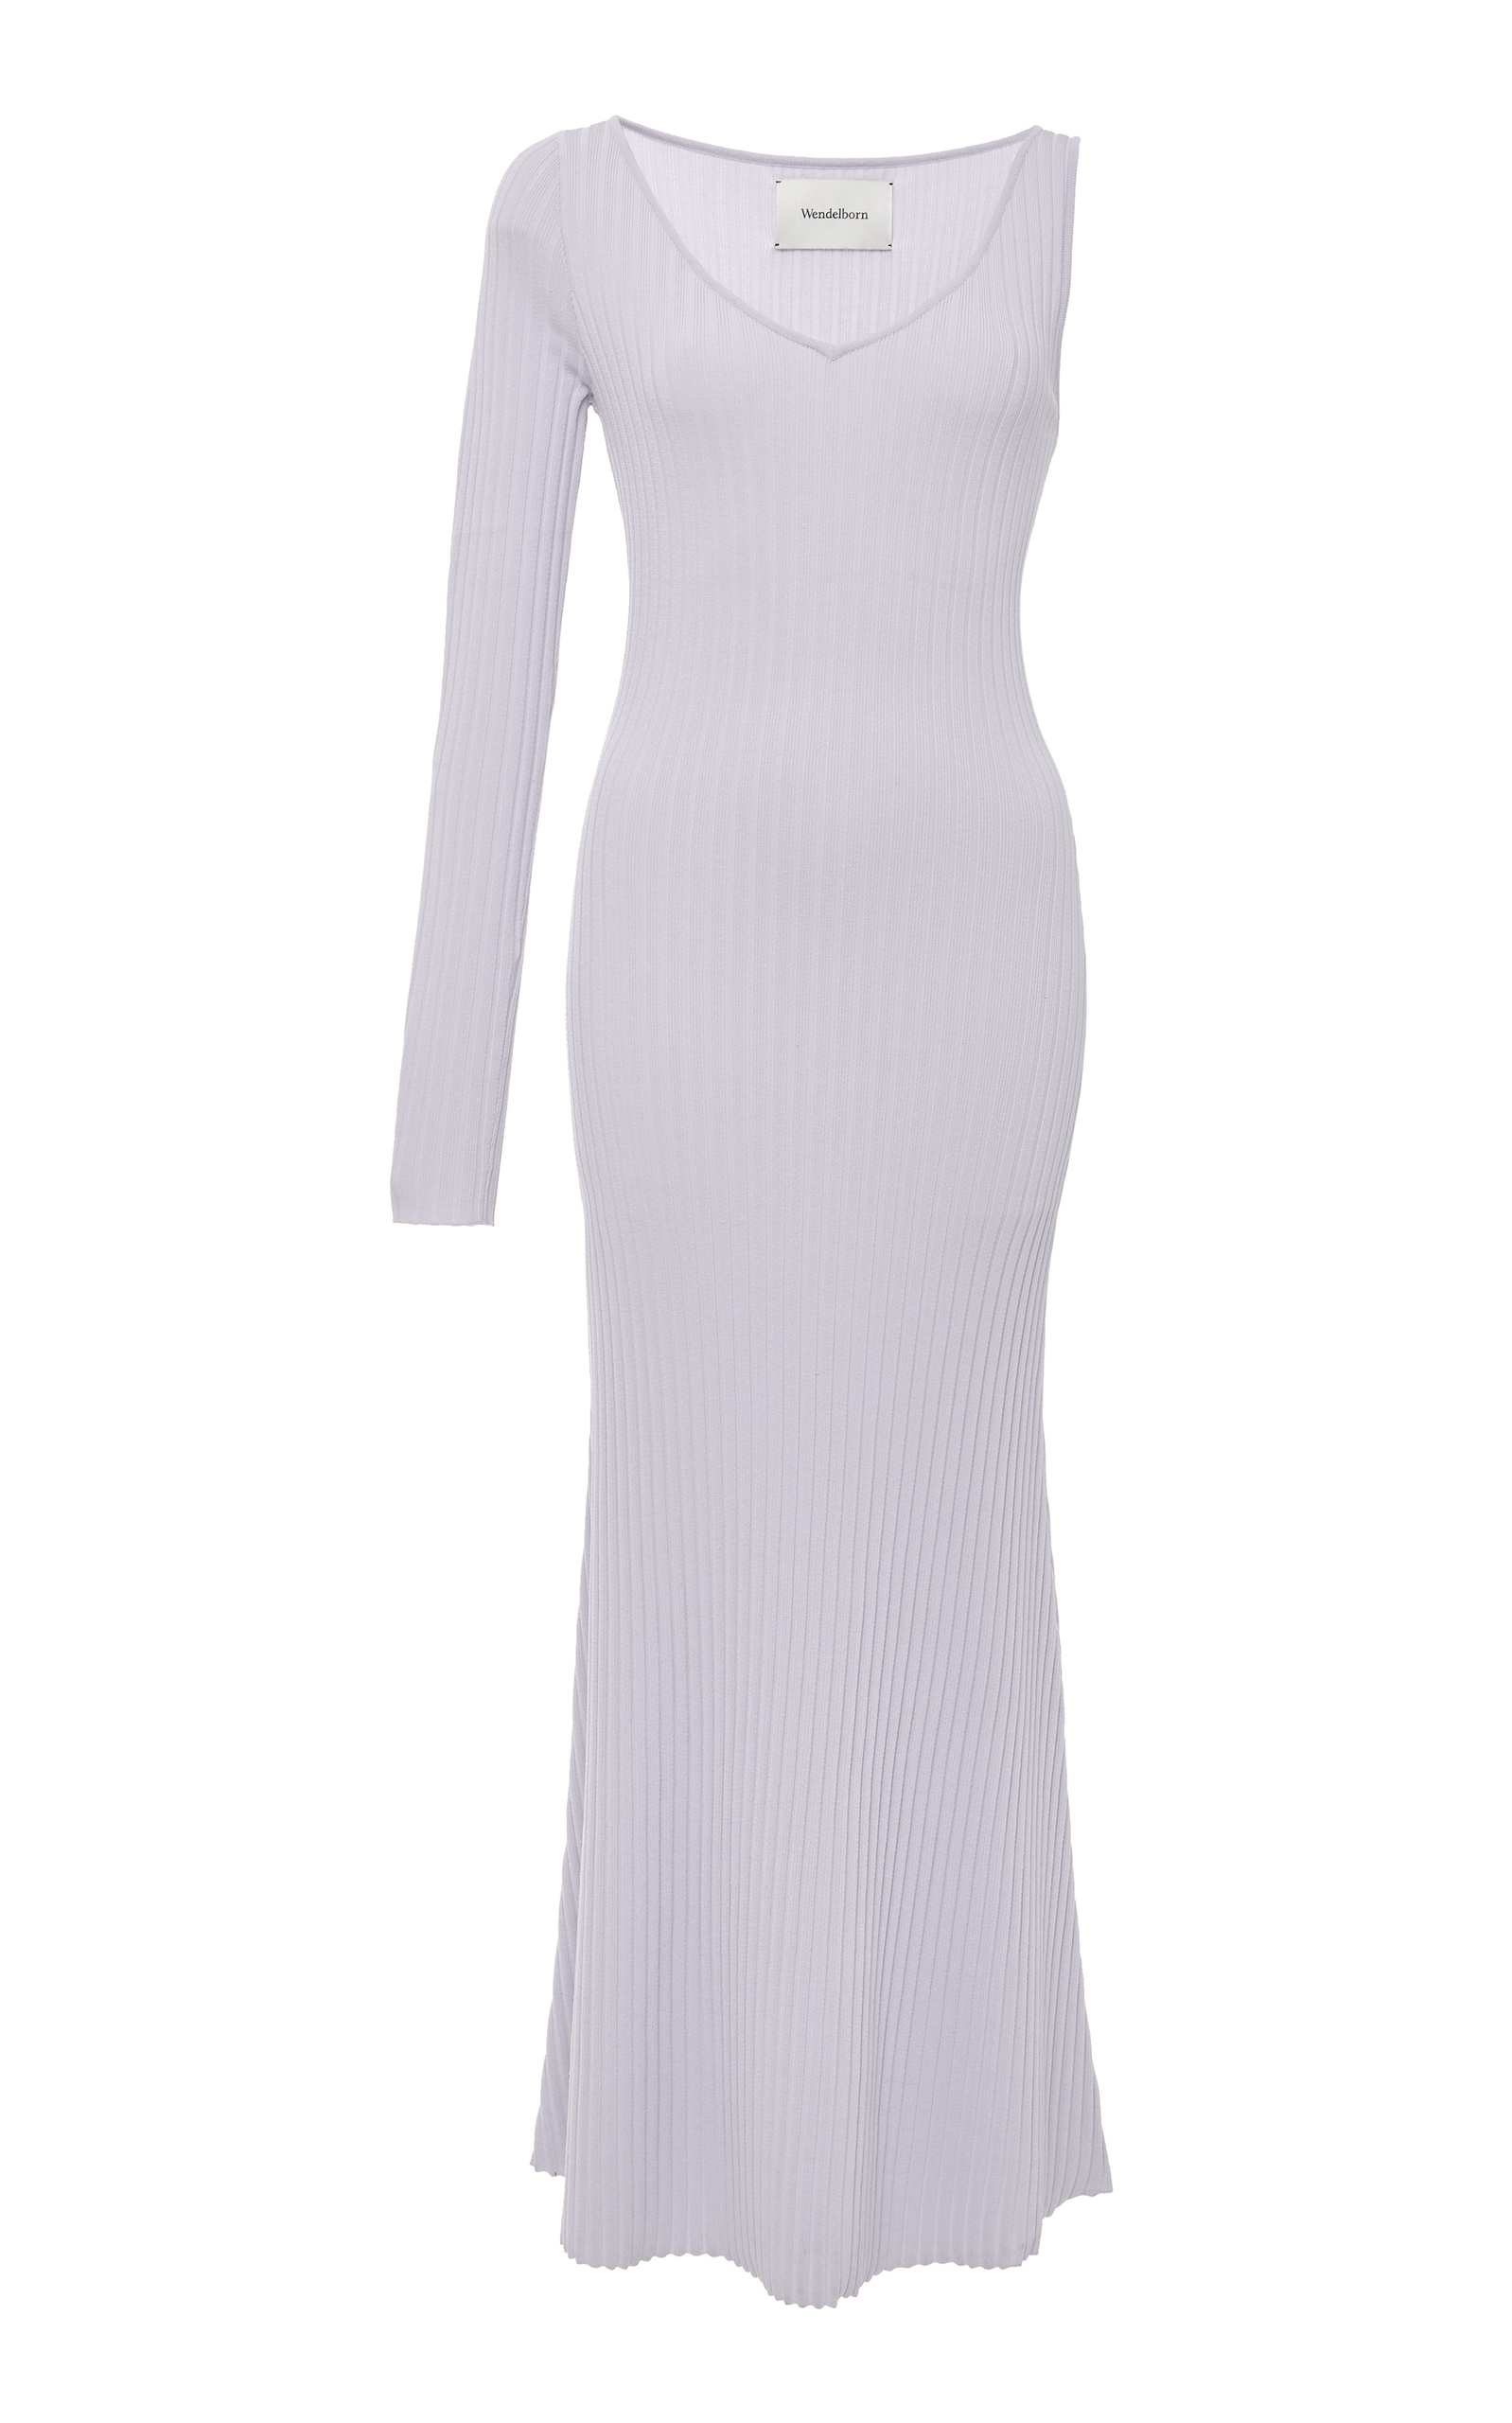 WENDELBORN One Arm Rib Dress in Purple